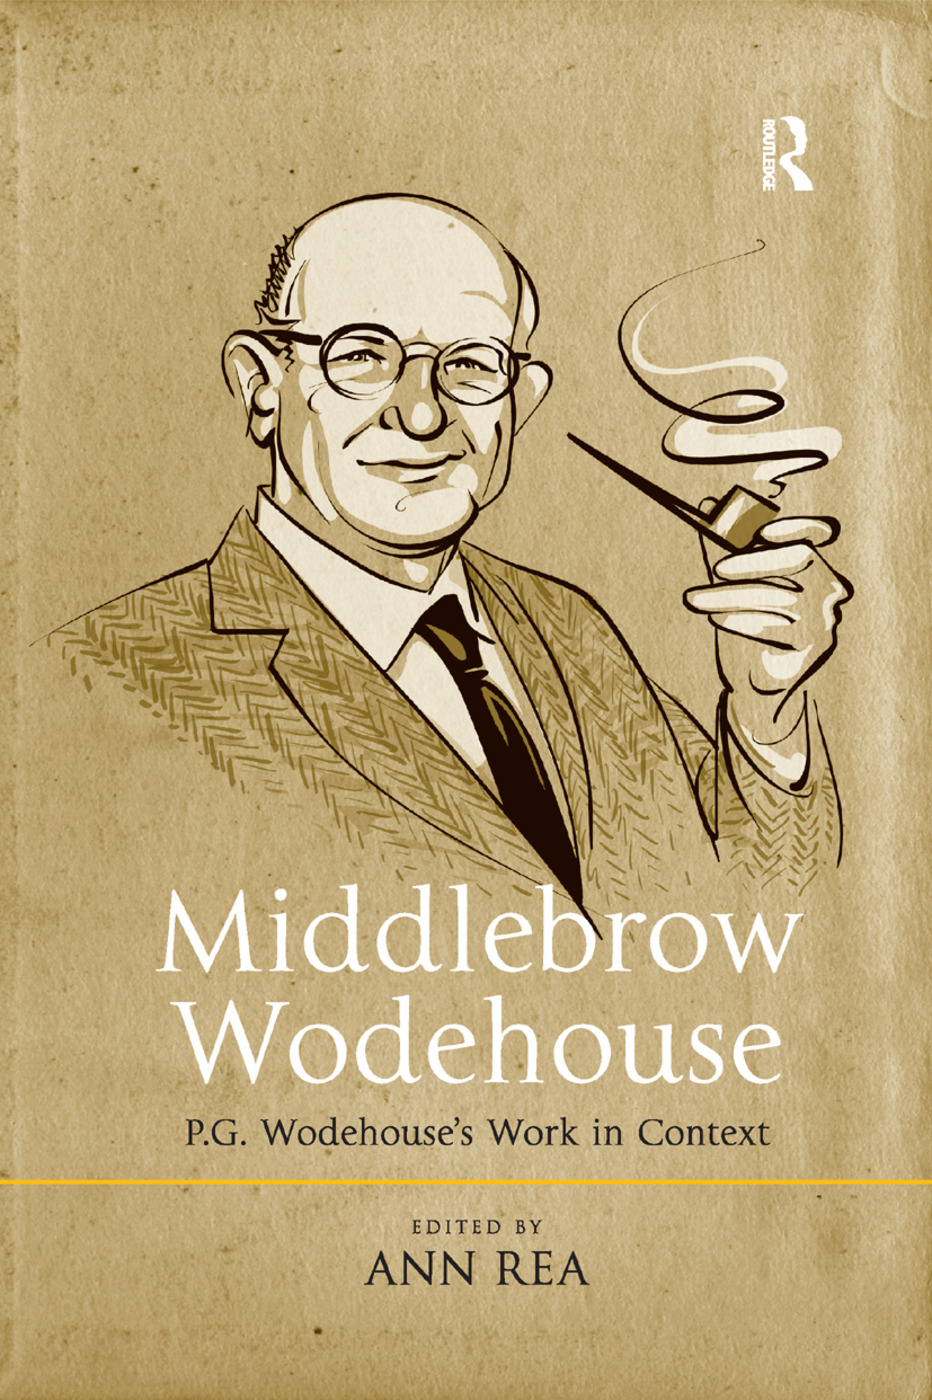 Middlebrow Wodehouse: P.G. Wodehouse's Work in Context book cover